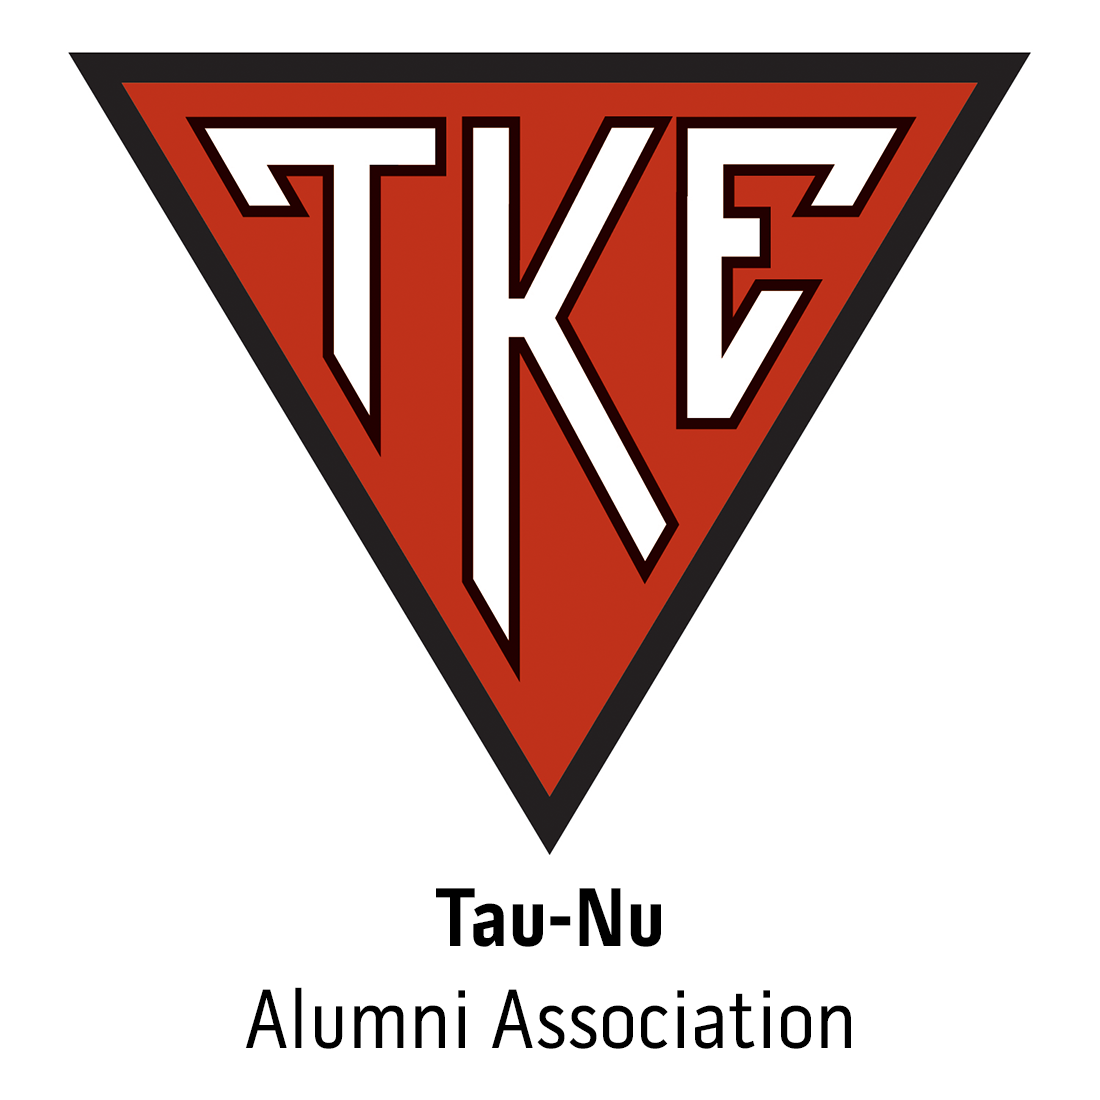 Tau-Nu Alumni Association at Shawnee State University